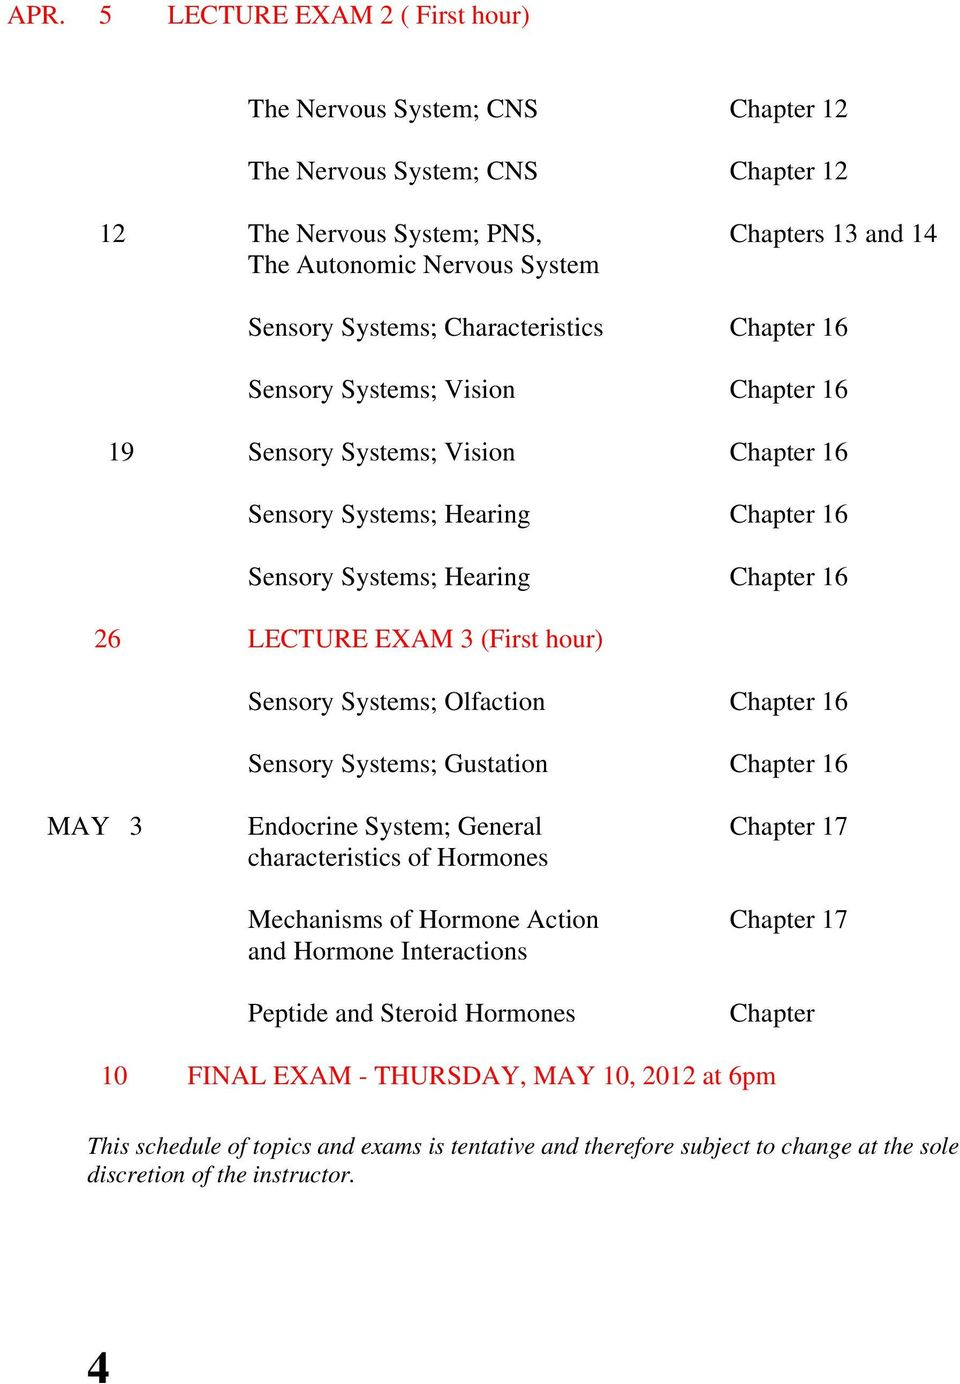 hour) Sensory Systems; Olfaction Chapter 16 Sensory Systems; Gustation Chapter 16 MAY 3 Endocrine System; General Chapter 17 characteristics of Hormones Mechanisms of Hormone Action Chapter 17 and